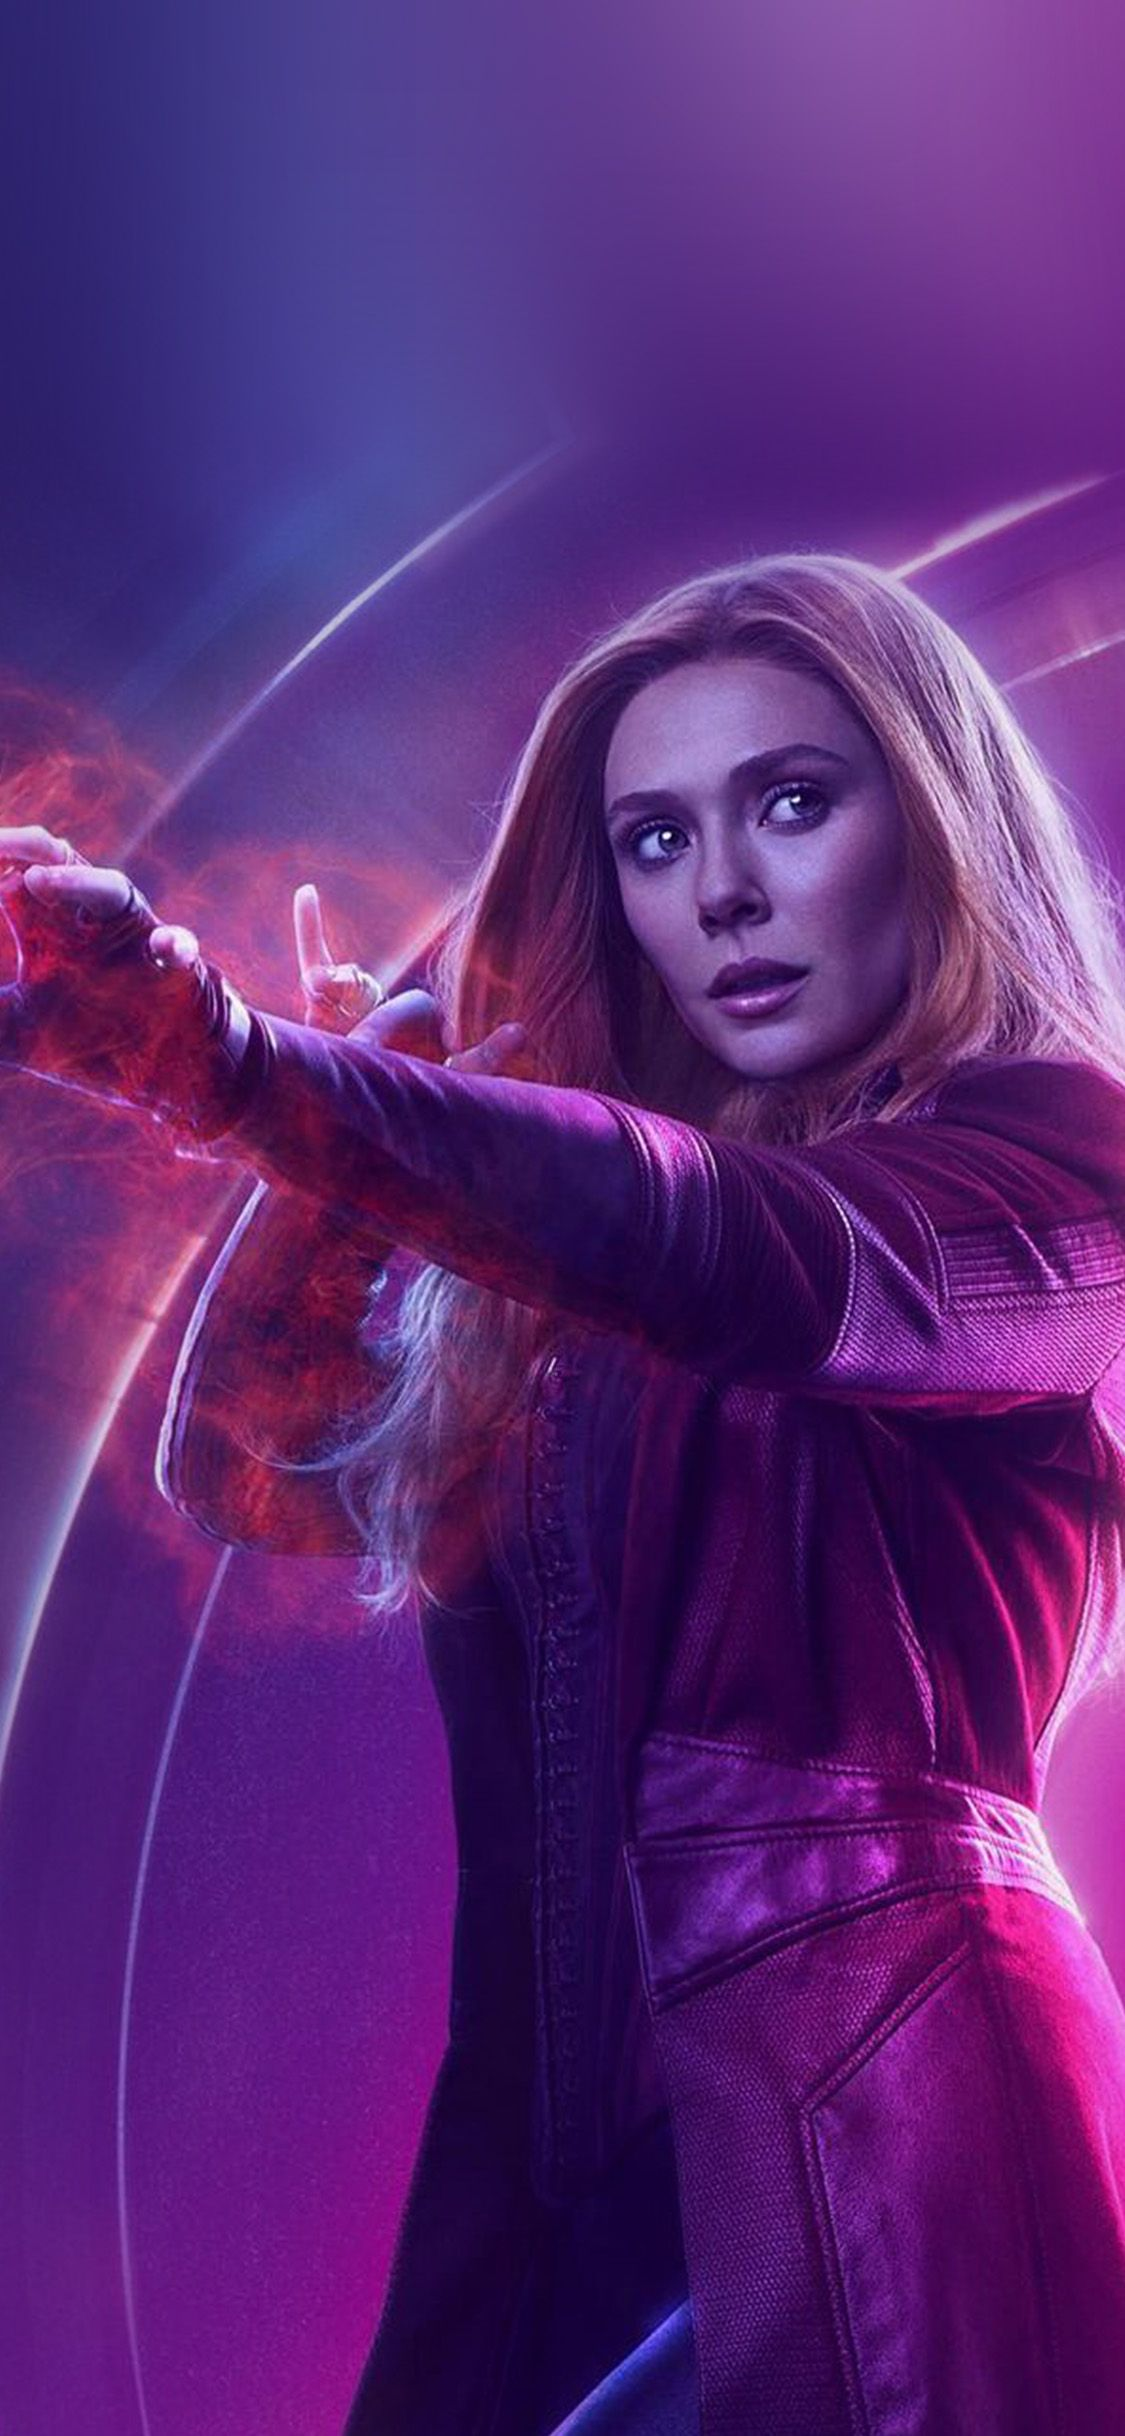 Scarlet Witch Avengers Wallpaper Scarlet Witch Avengers Scarlet Witch Marvel Avengers Film